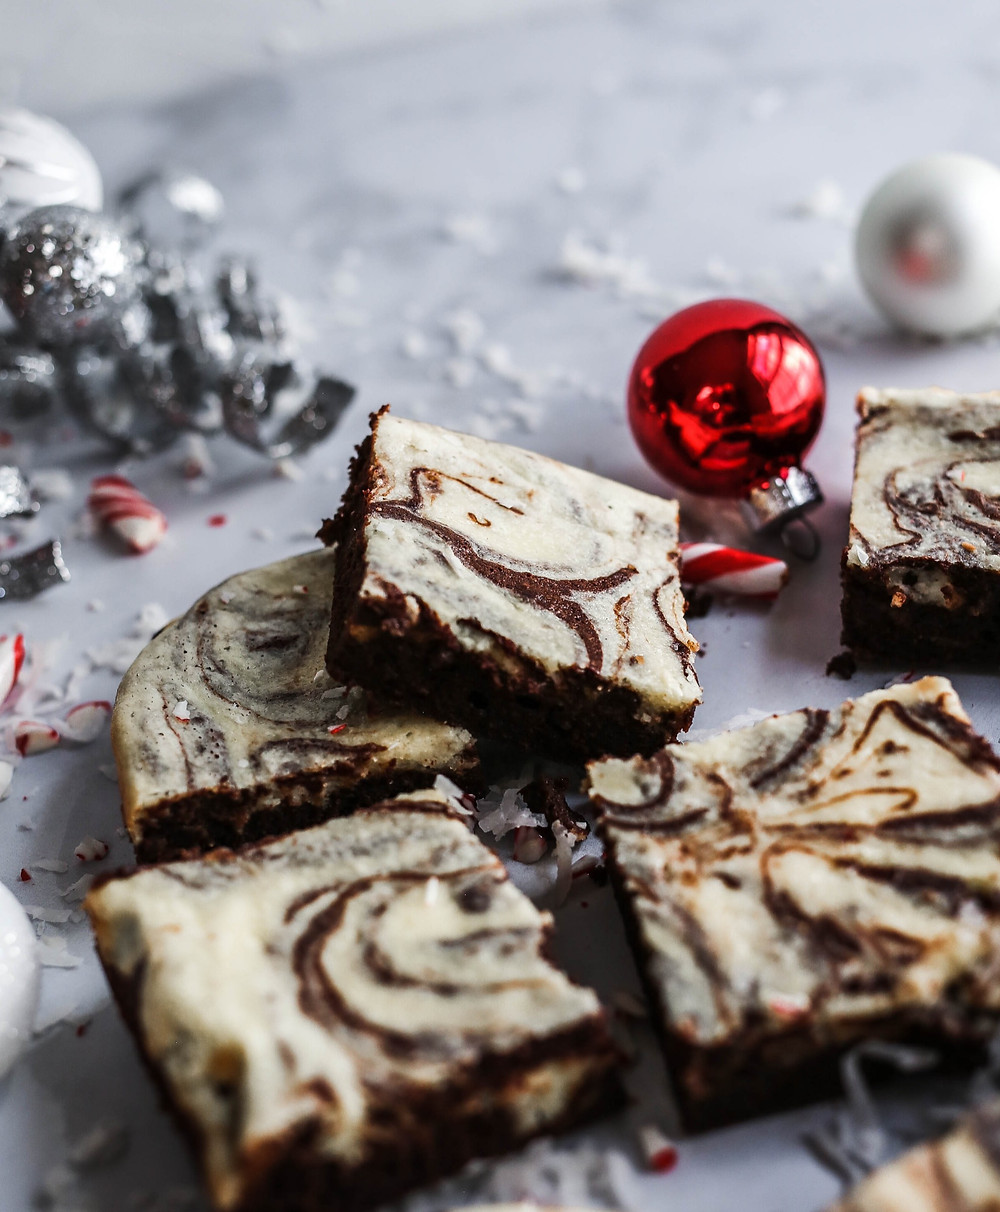 Chocolate brownies swirled with peppermint cheesecake surrounded by coconut flakes, Christmas ornaments and crushed candy canes